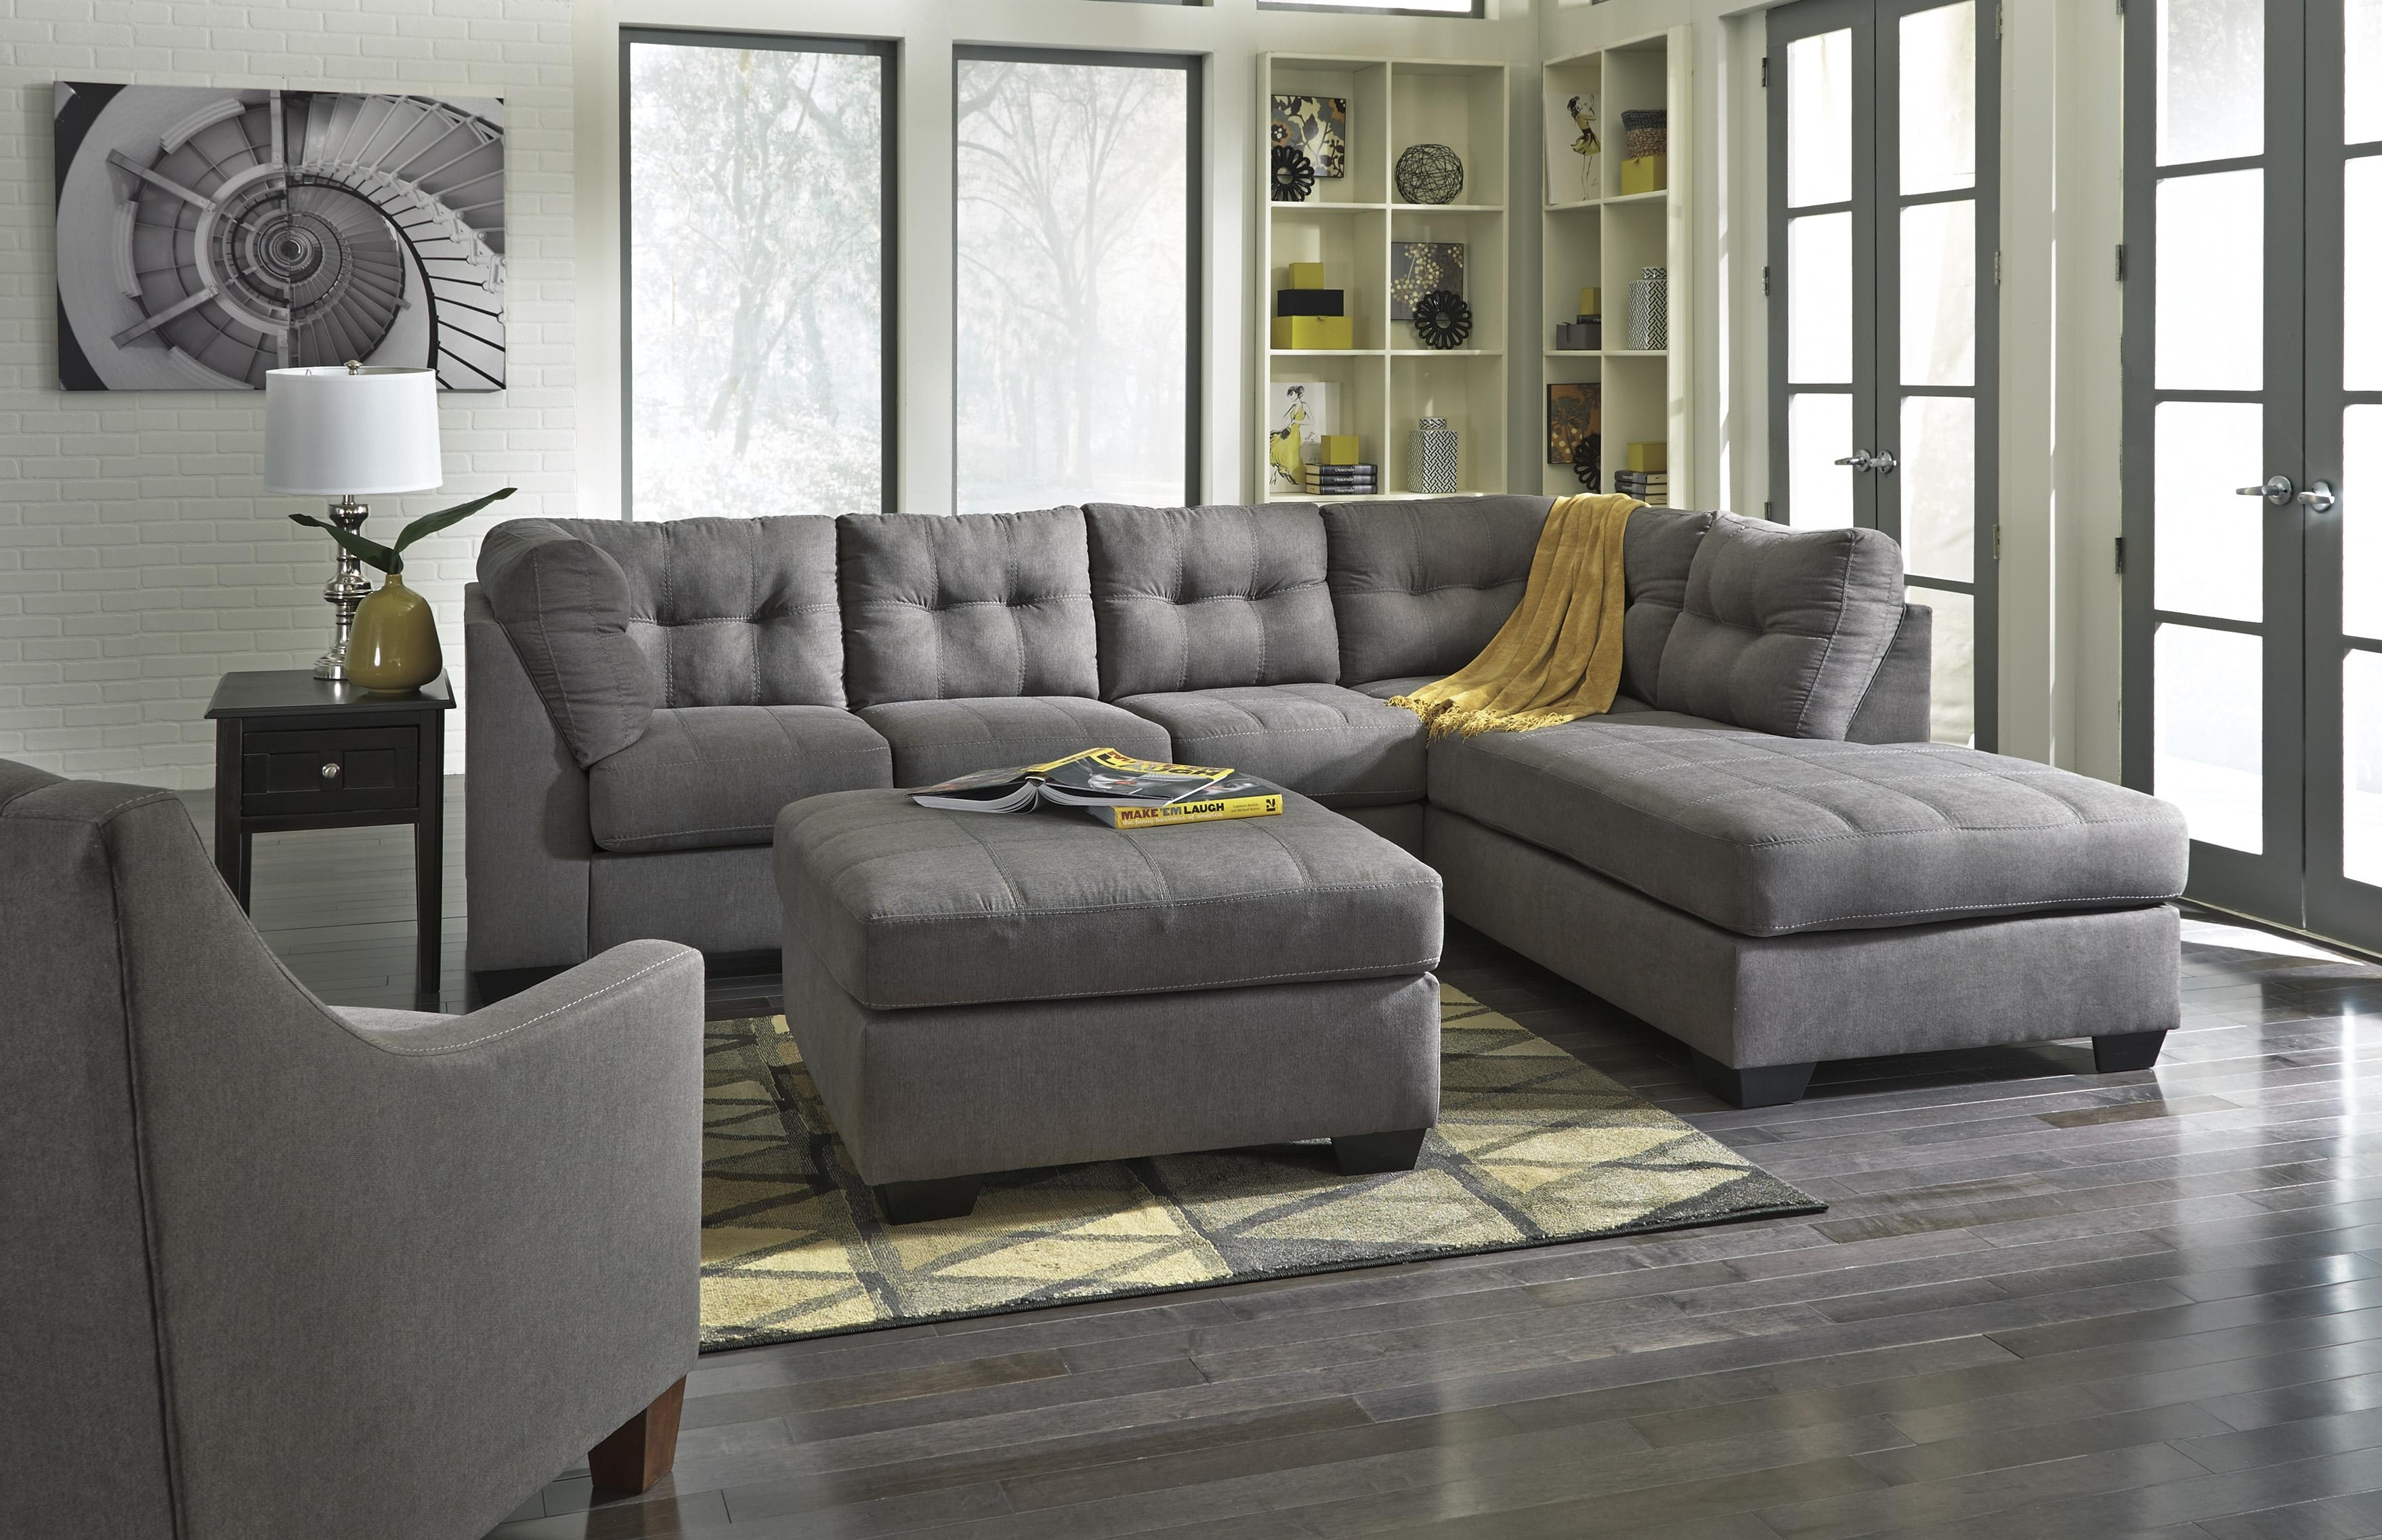 Jody – Charcoal 2 Piece Sectional With Right Chaise | Rotmans Throughout Sectional Sofas With 2 Chaises (View 6 of 10)